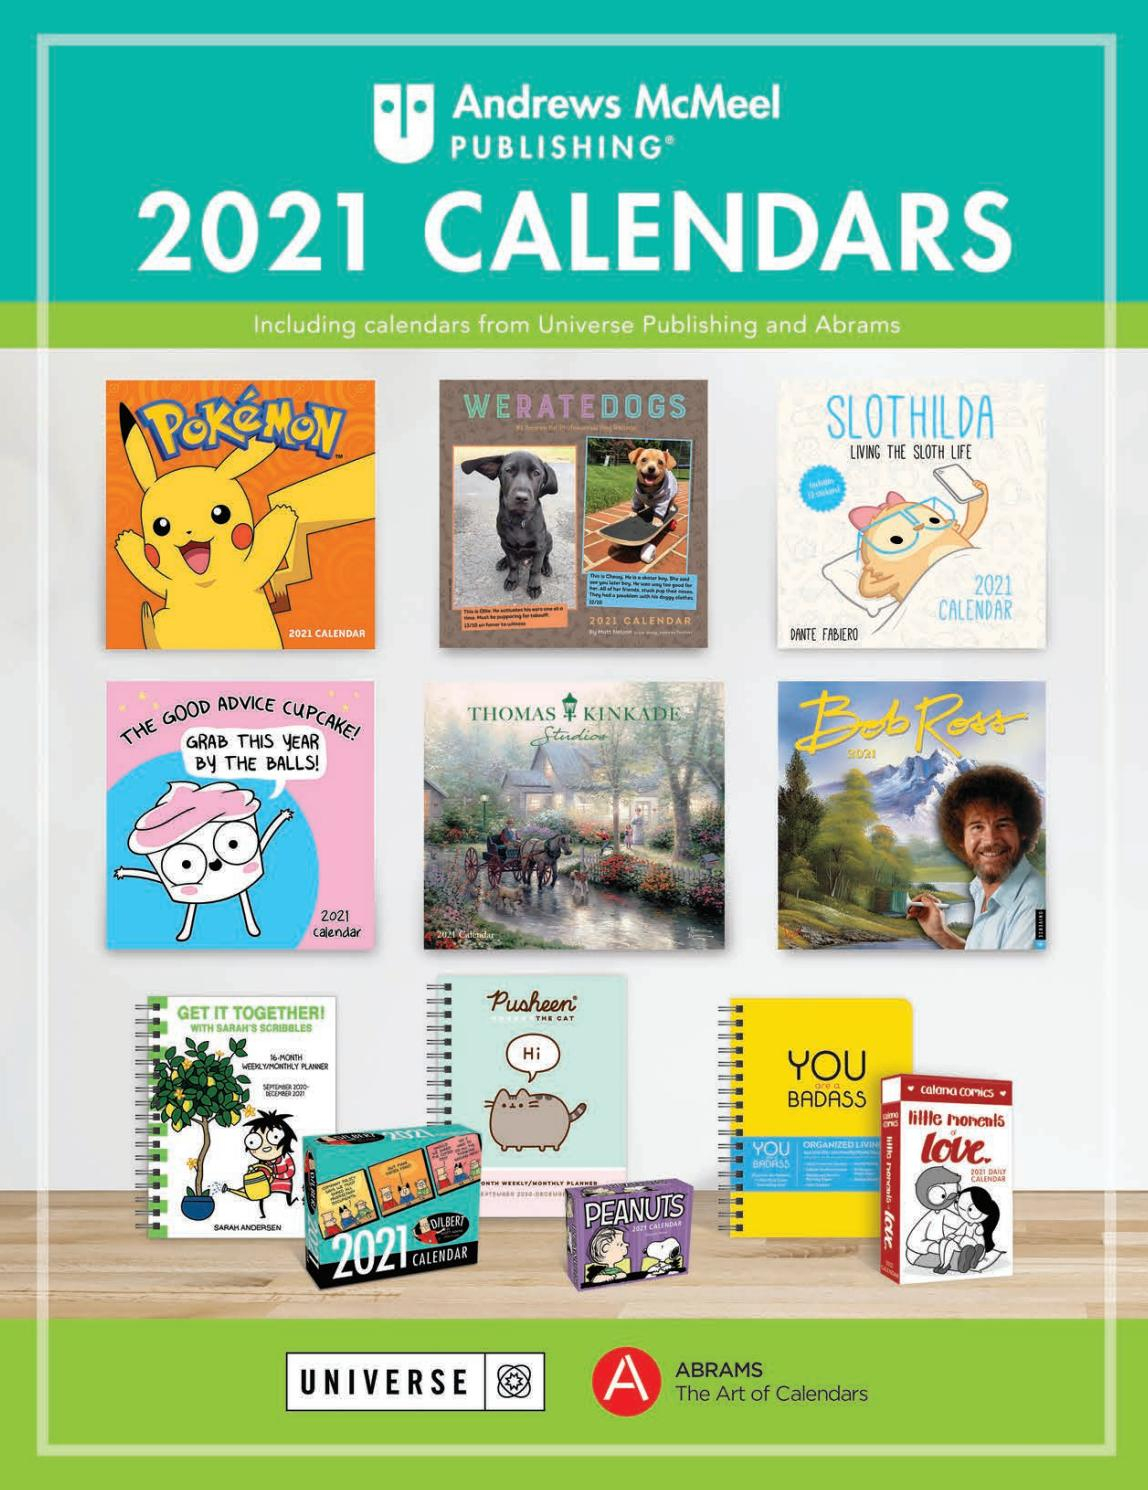 Andrews Mcmeel 2021 Calendar Catalogandrews Mcmeel inside Mifflin County School Ddistrict Calendar 2021-2020